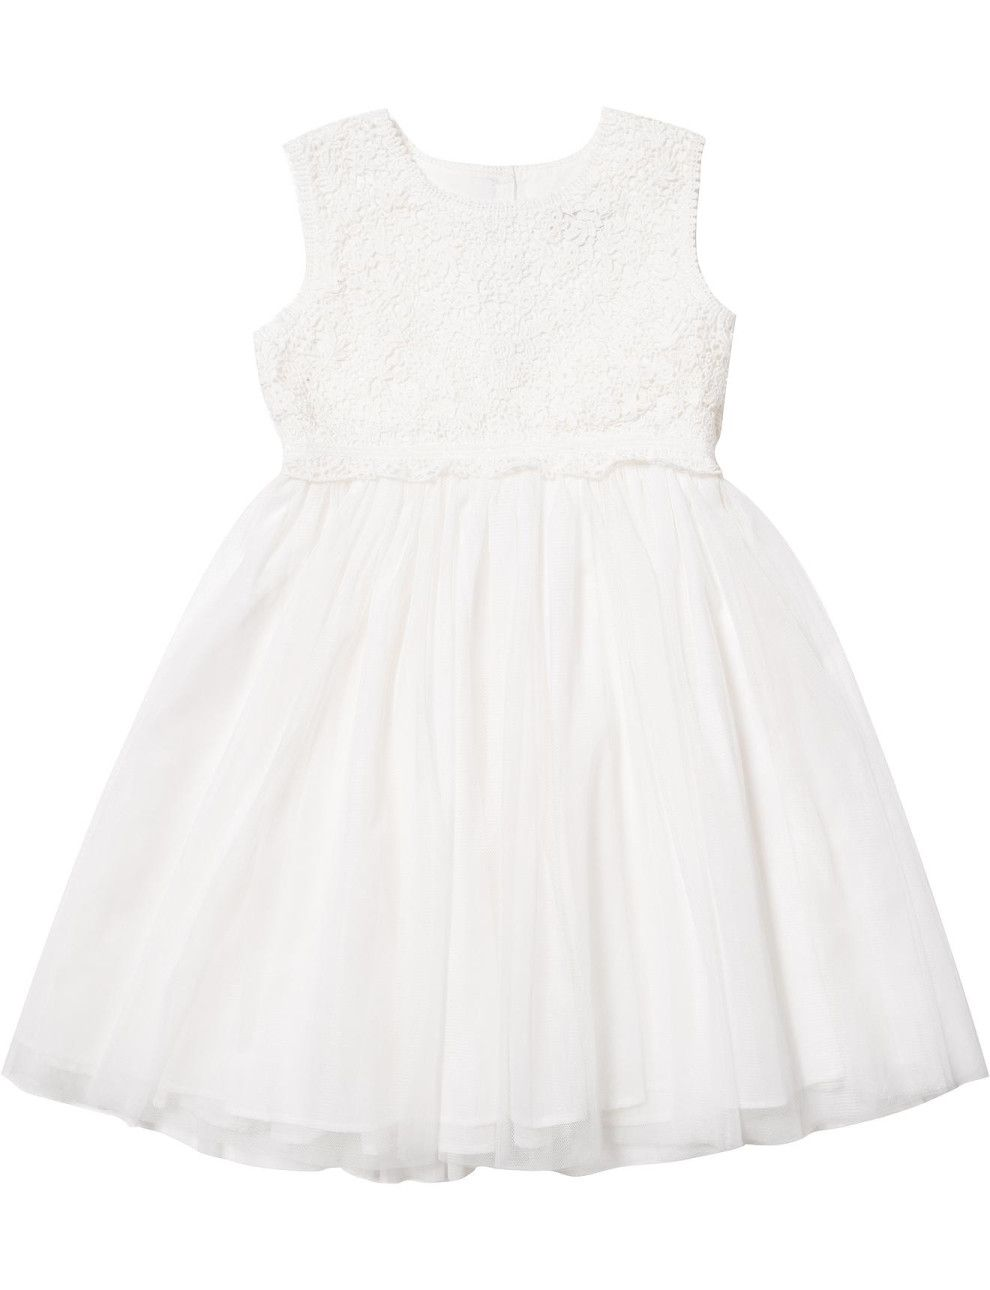 Sophia Lace Yoke Dress | David Jones | Wedding dress | Pinterest ...